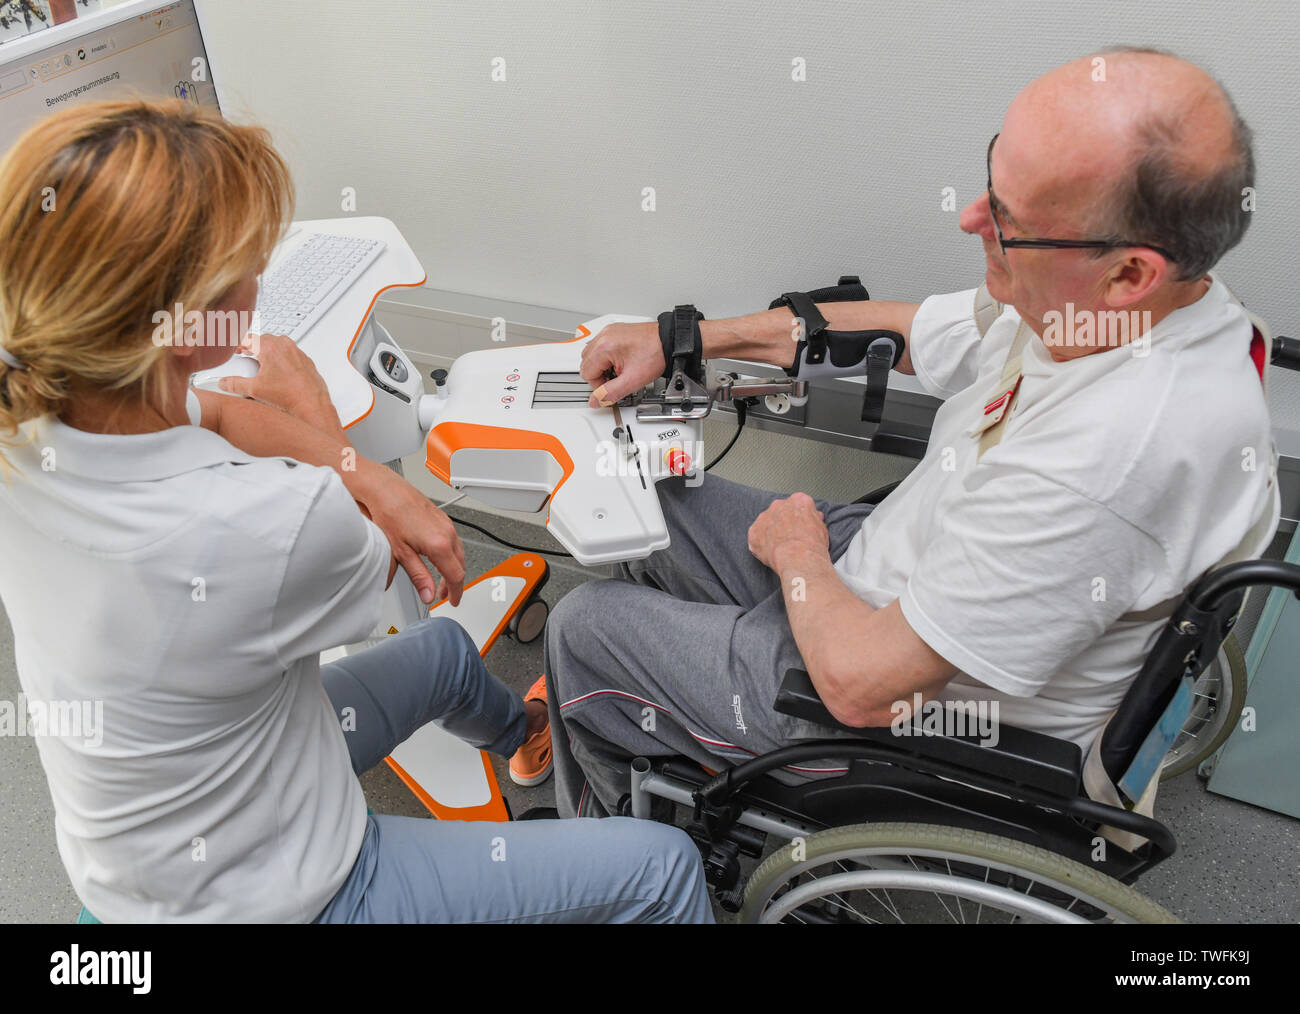 Stroke Patient Rehabilitation Stock Photos & Stroke Patient